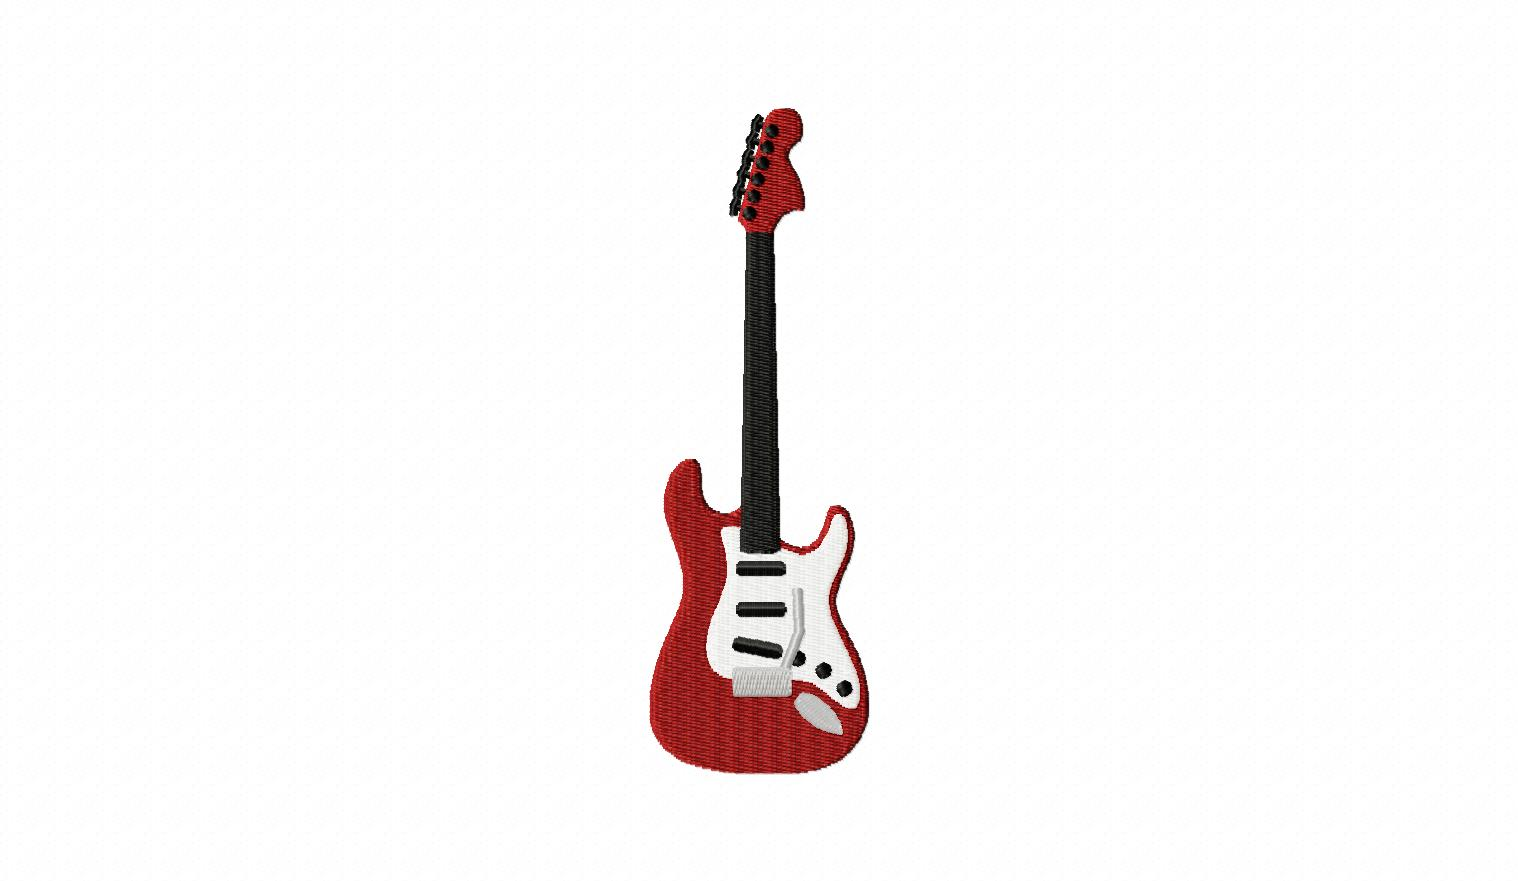 Guitar Embroidery Design Free